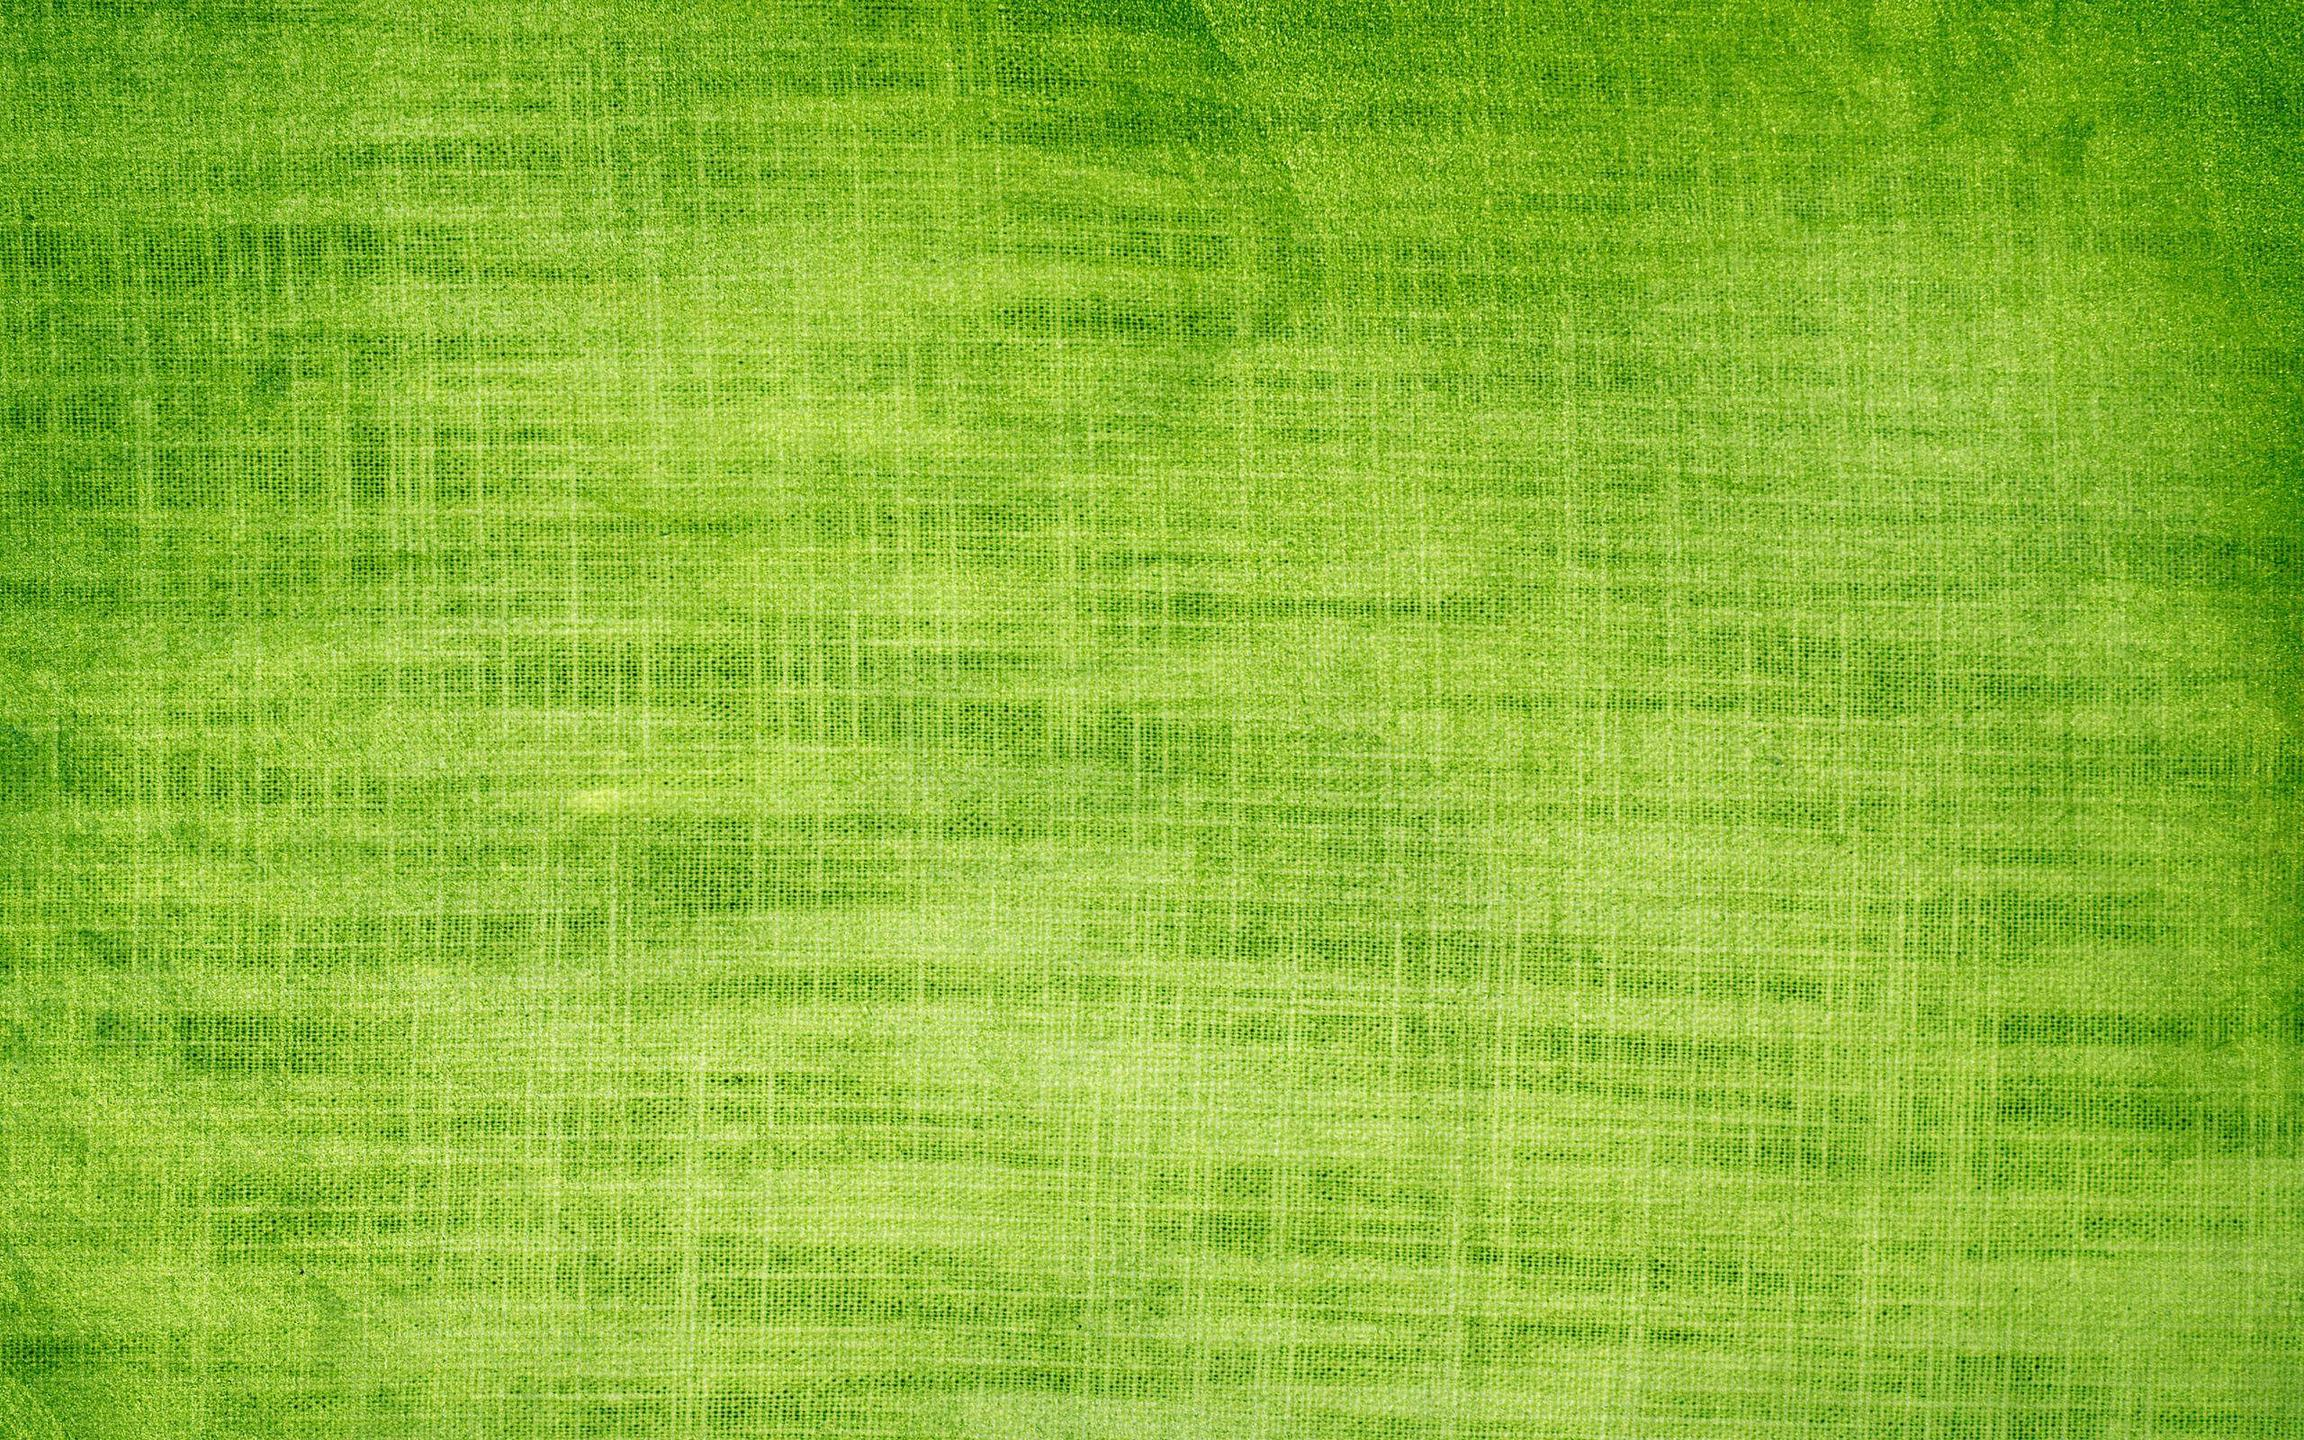 Texture Backgrounds Wallpapers - Wallpaper Cave